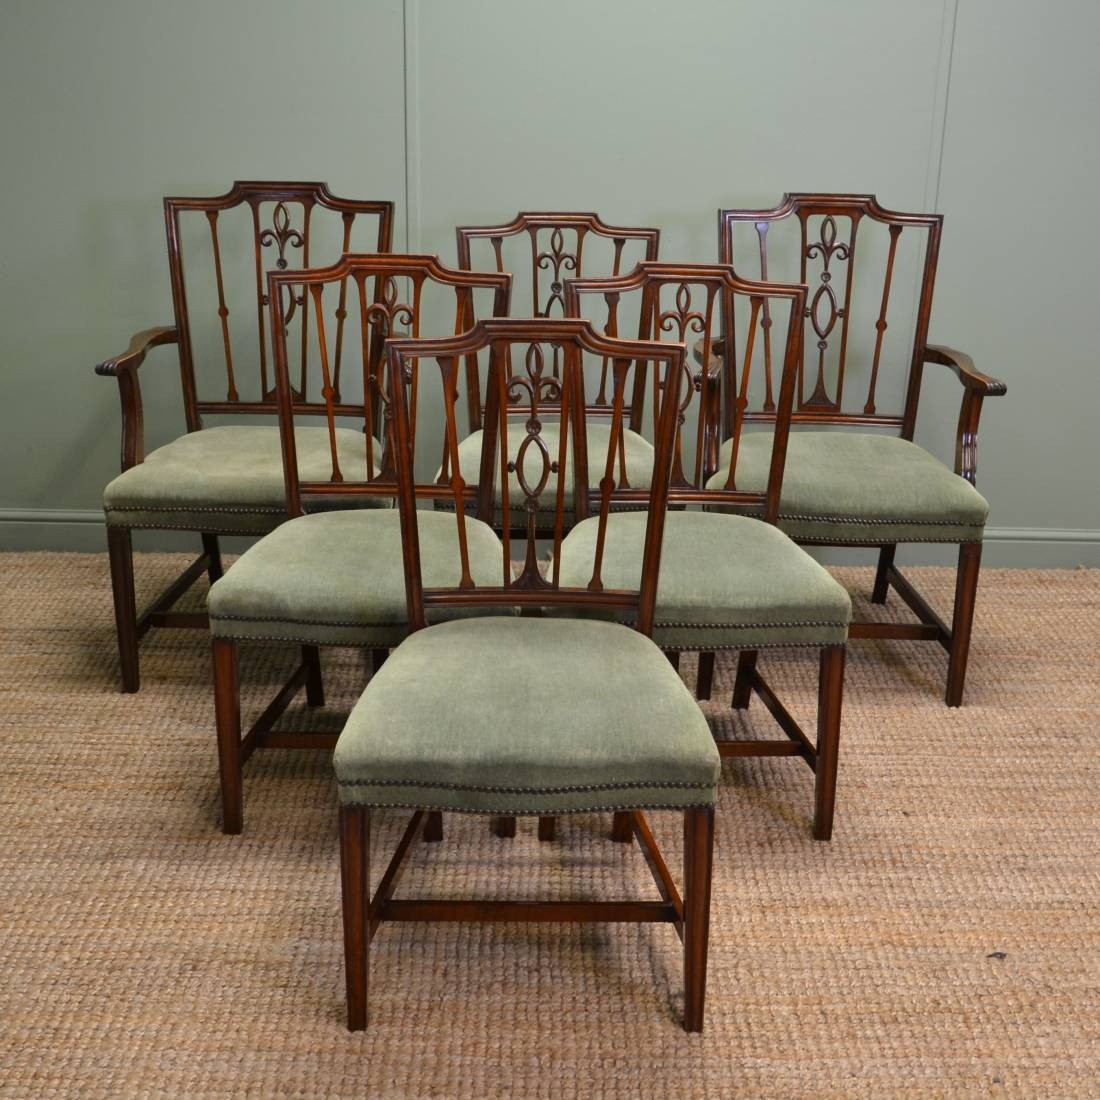 Vintage Chairs Set Of Six Edwardian Mahogany Antique Dining Chairs